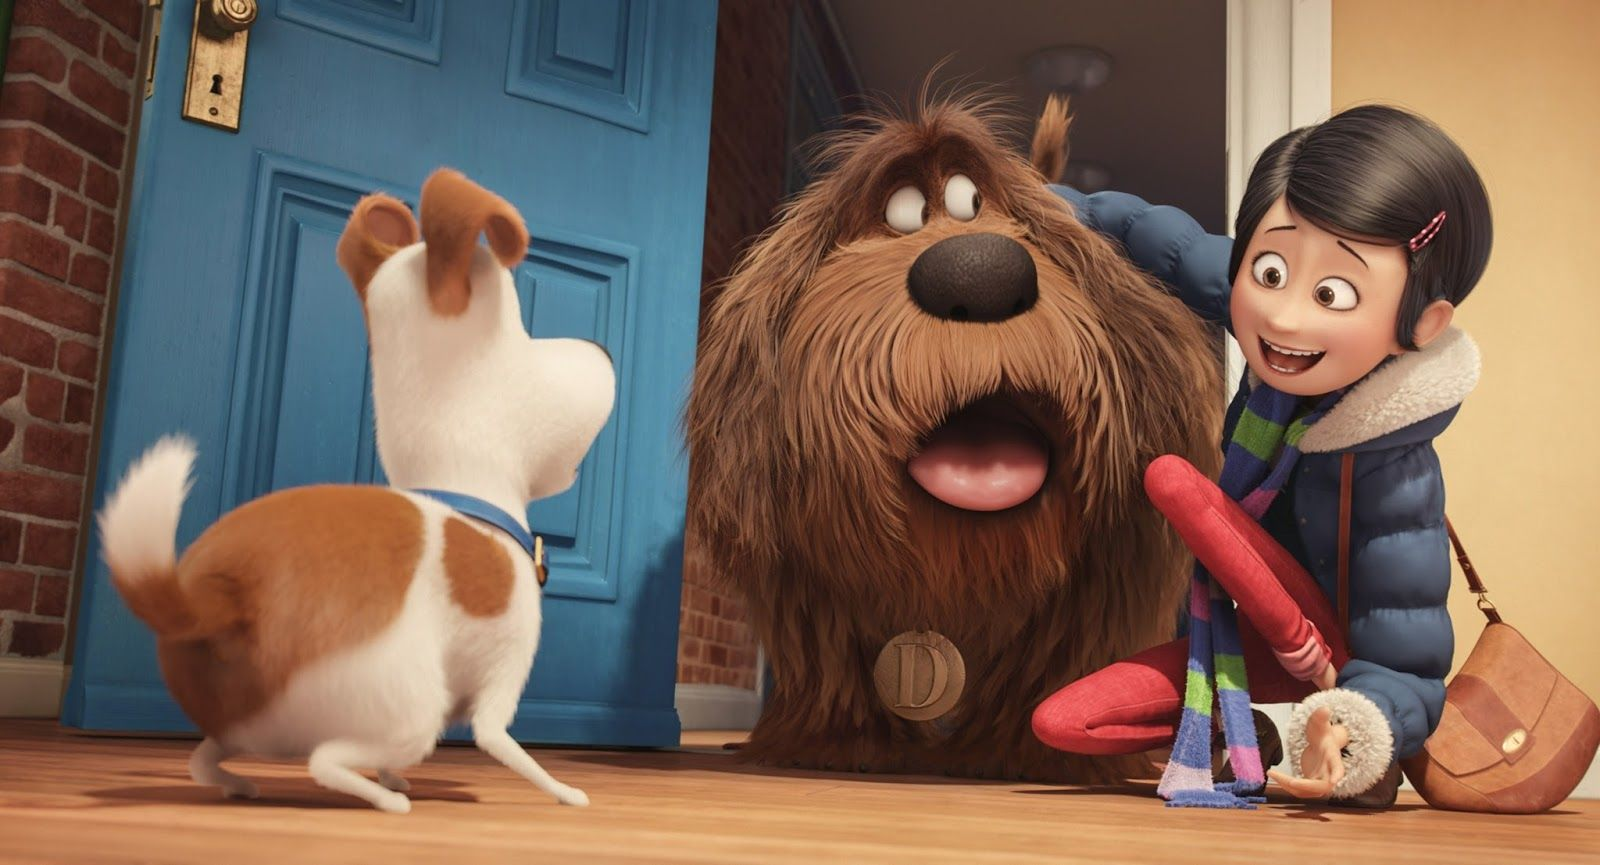 Secret Life Of Pets Cast Meet The Voices Of The Characters Secret Life Of Pets Cast 01 Photo Pets Movie Pet Trailer Animated Movies